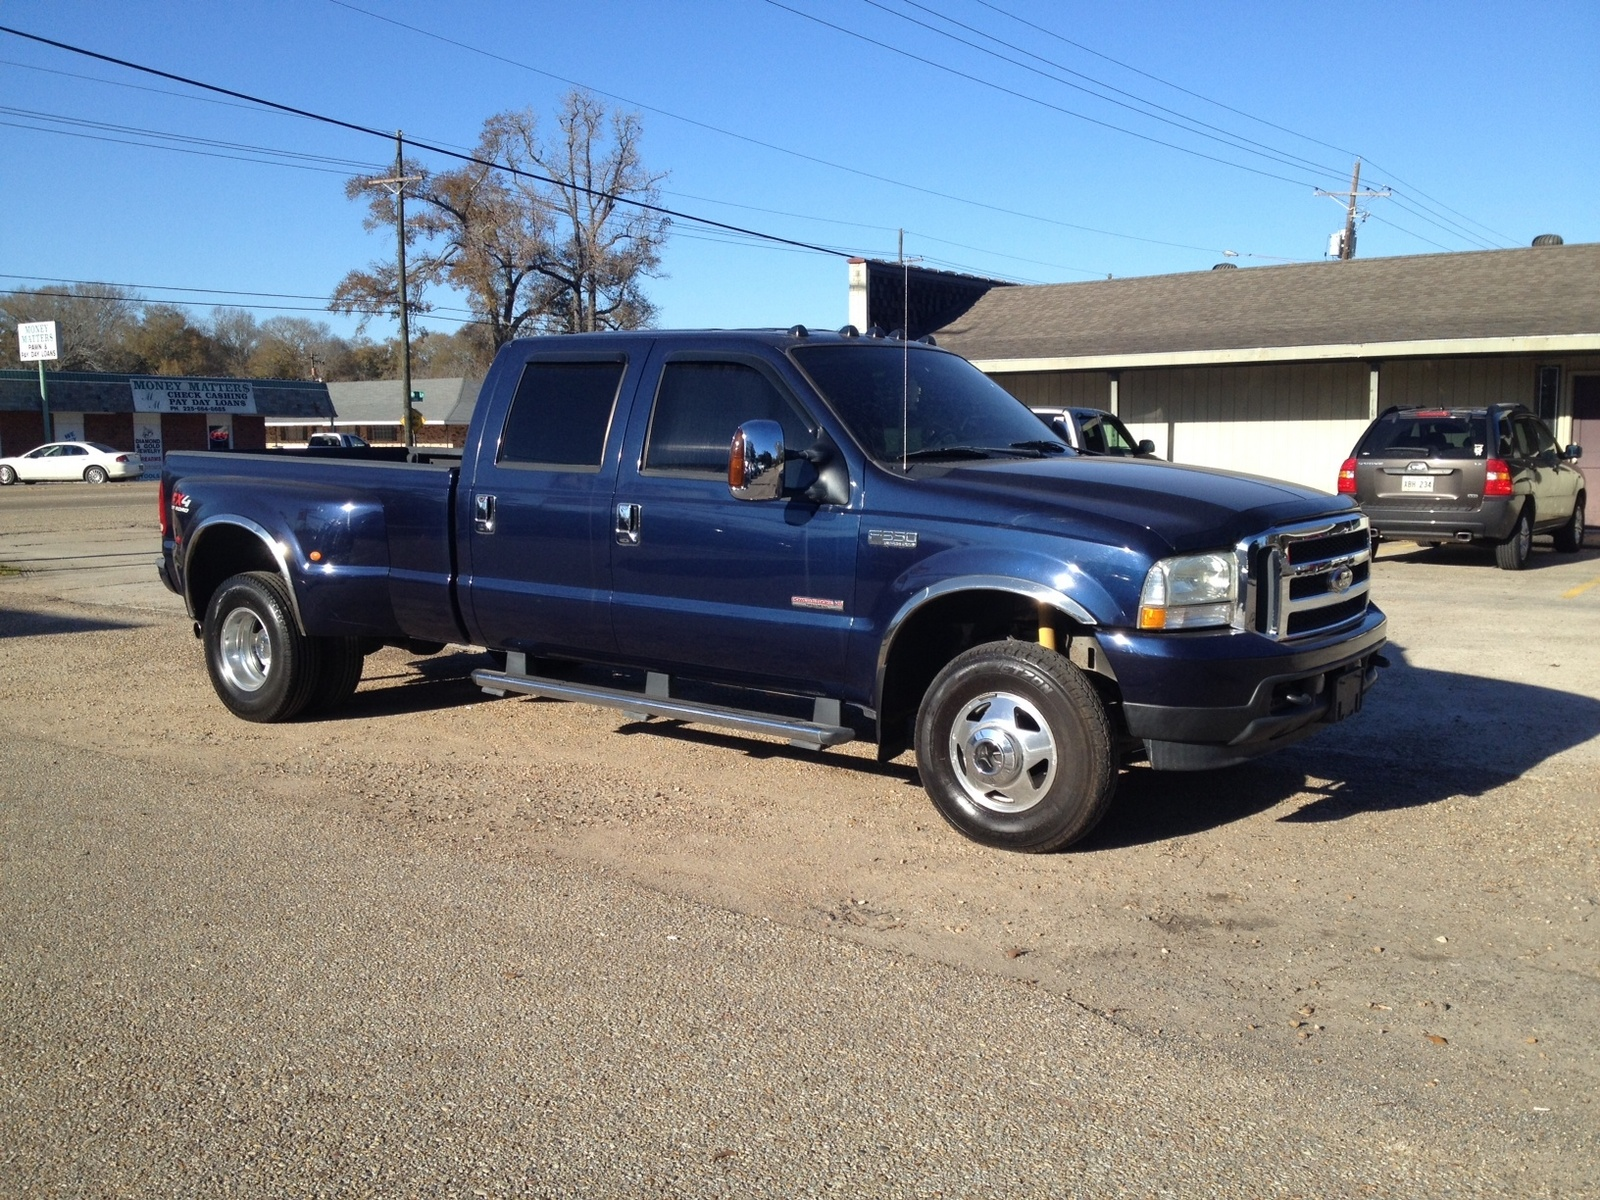 2004 Ford F-350 Super Duty - Pictures